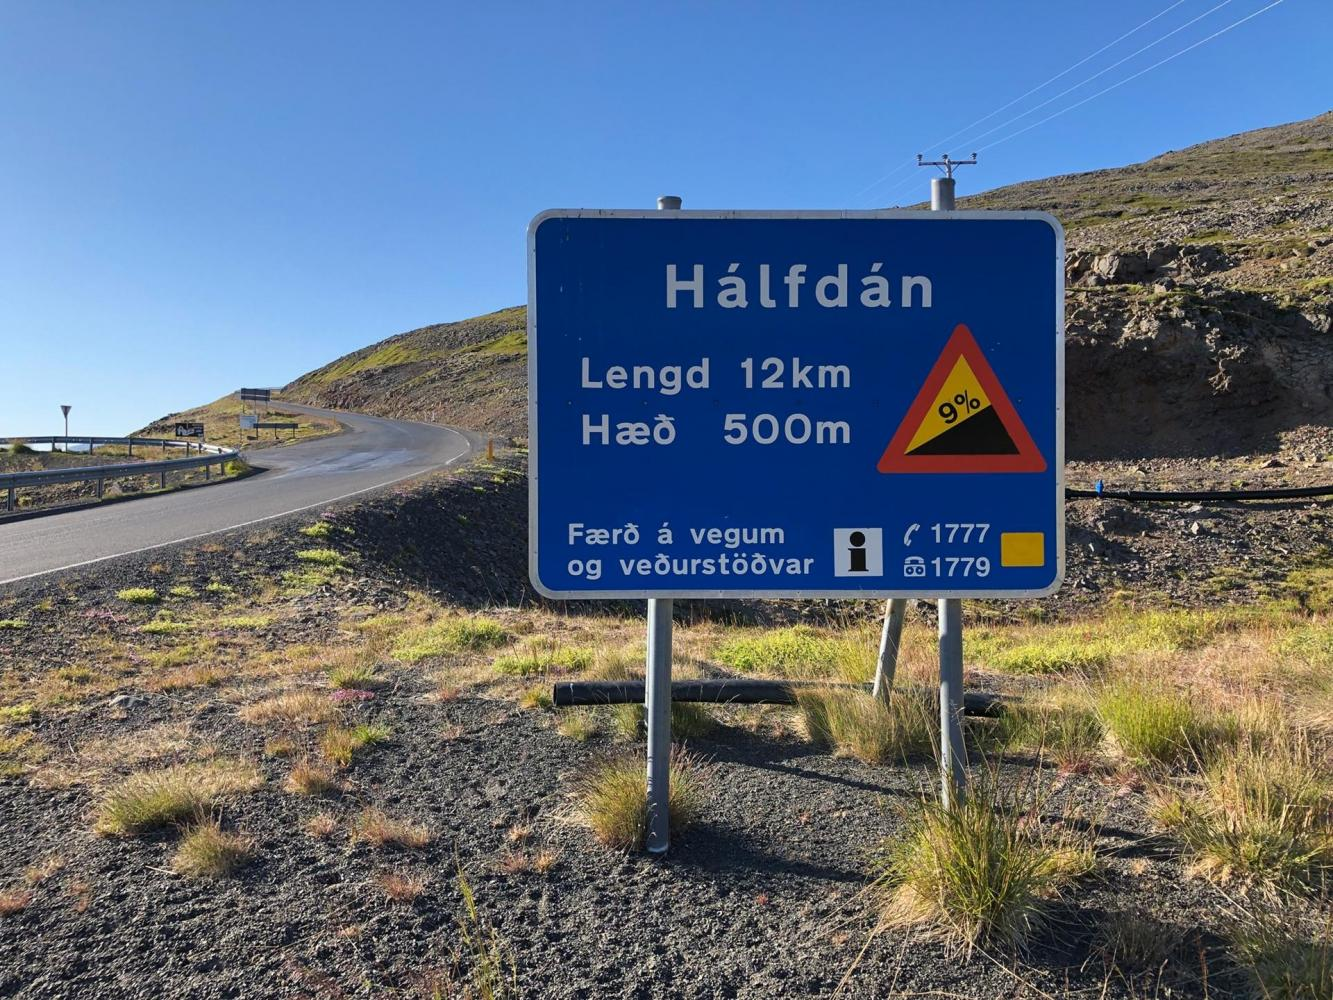 Halfdan South Bike Climb - PJAMM Cycling